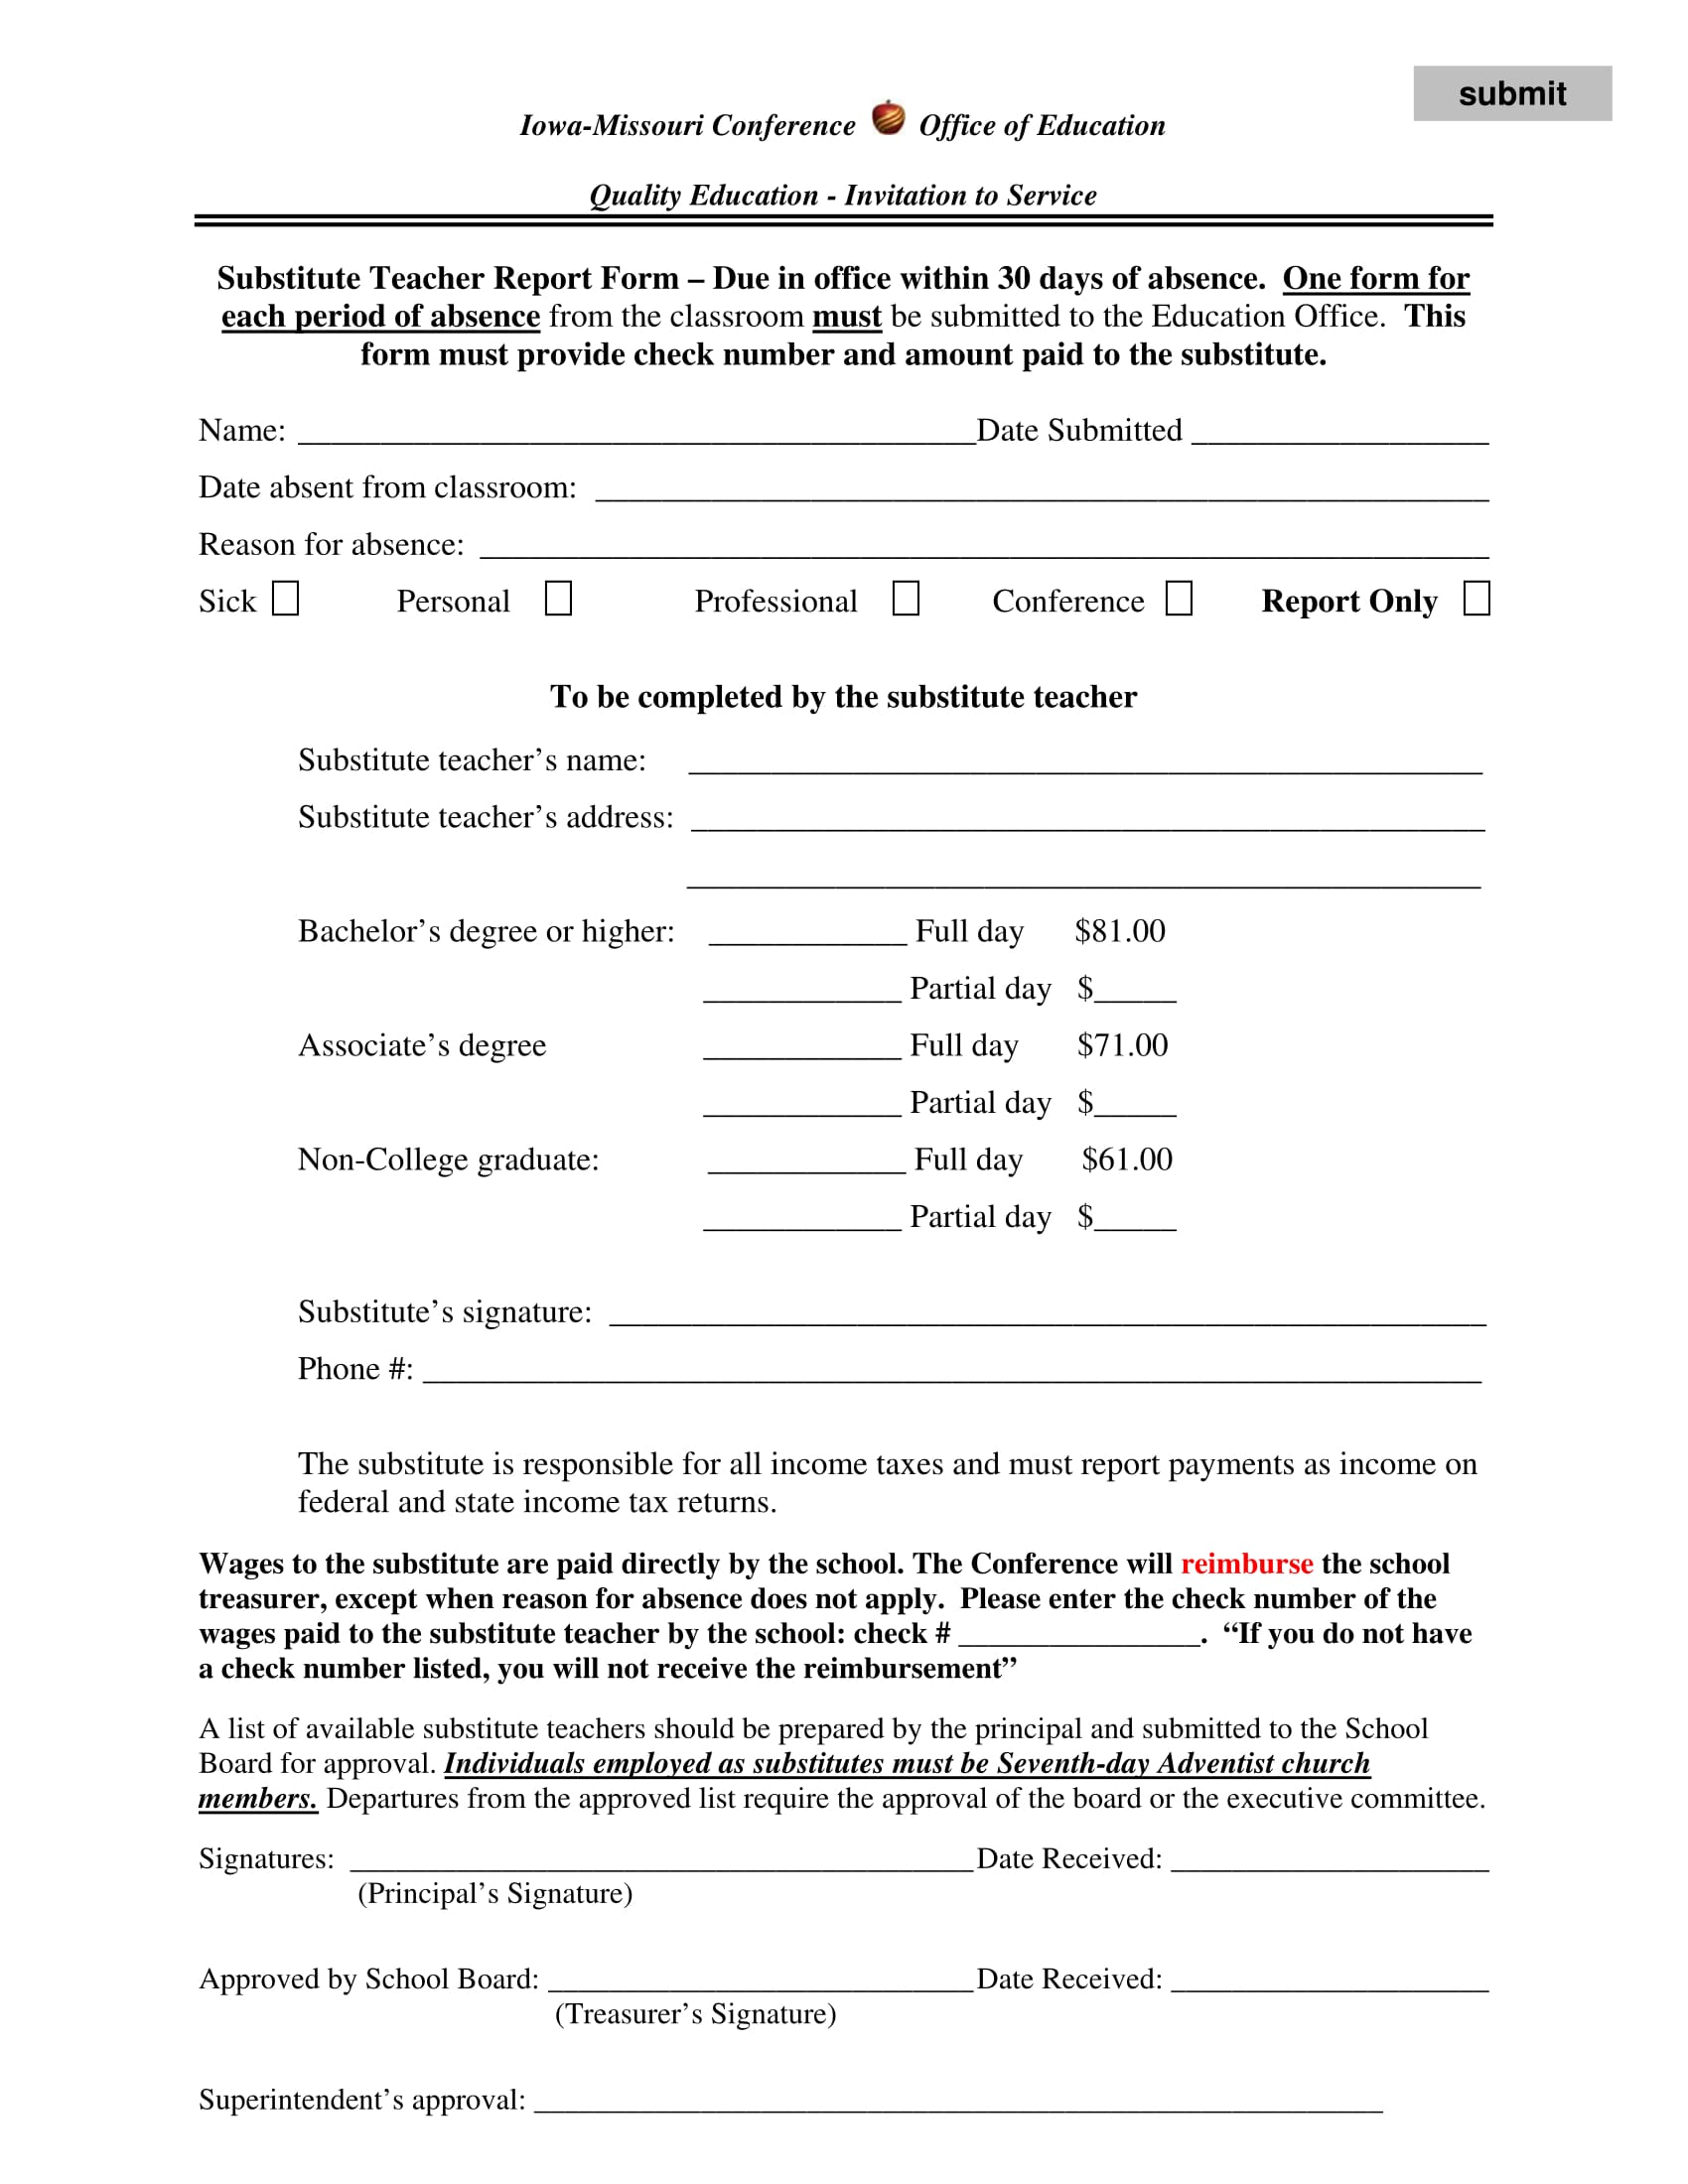 substitute teacher report form 1